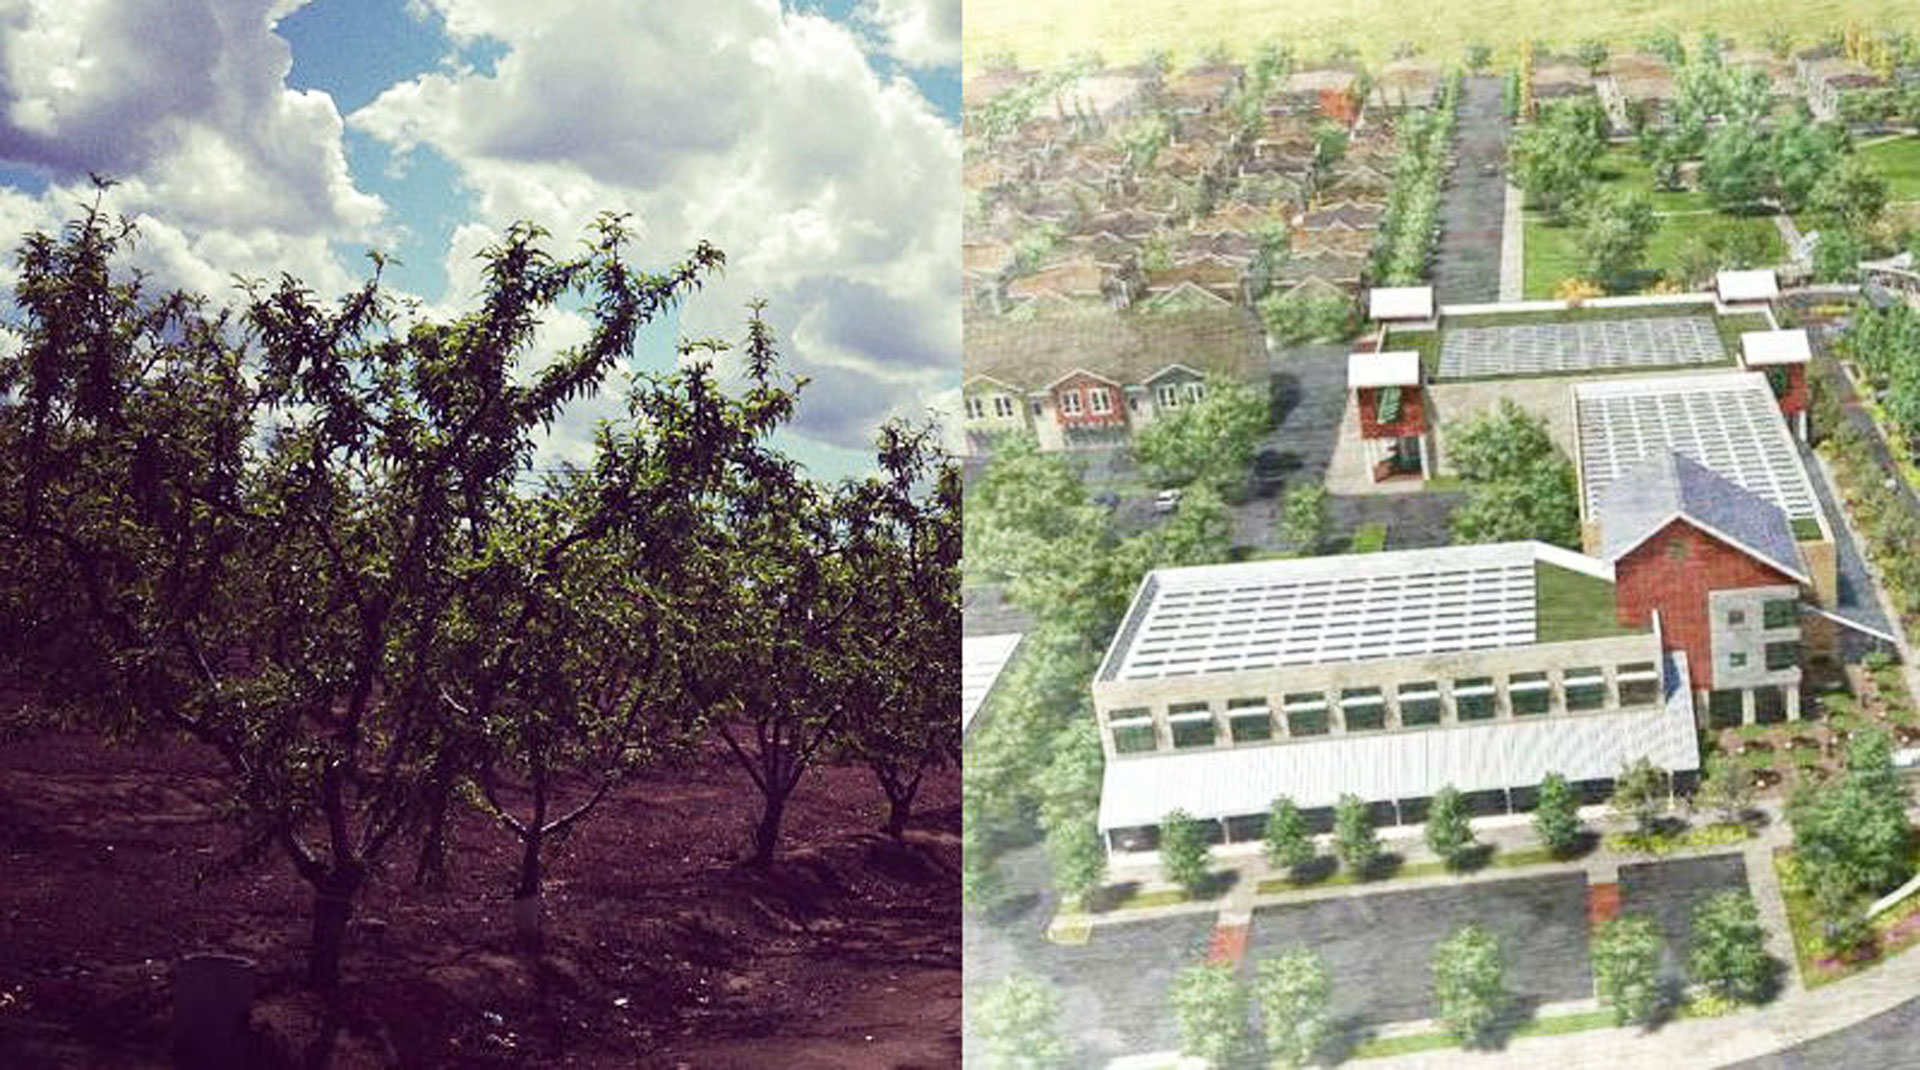 The town of Reedley is planning an eco-friendly community that it says could use less water than the orchards that once populated the land.